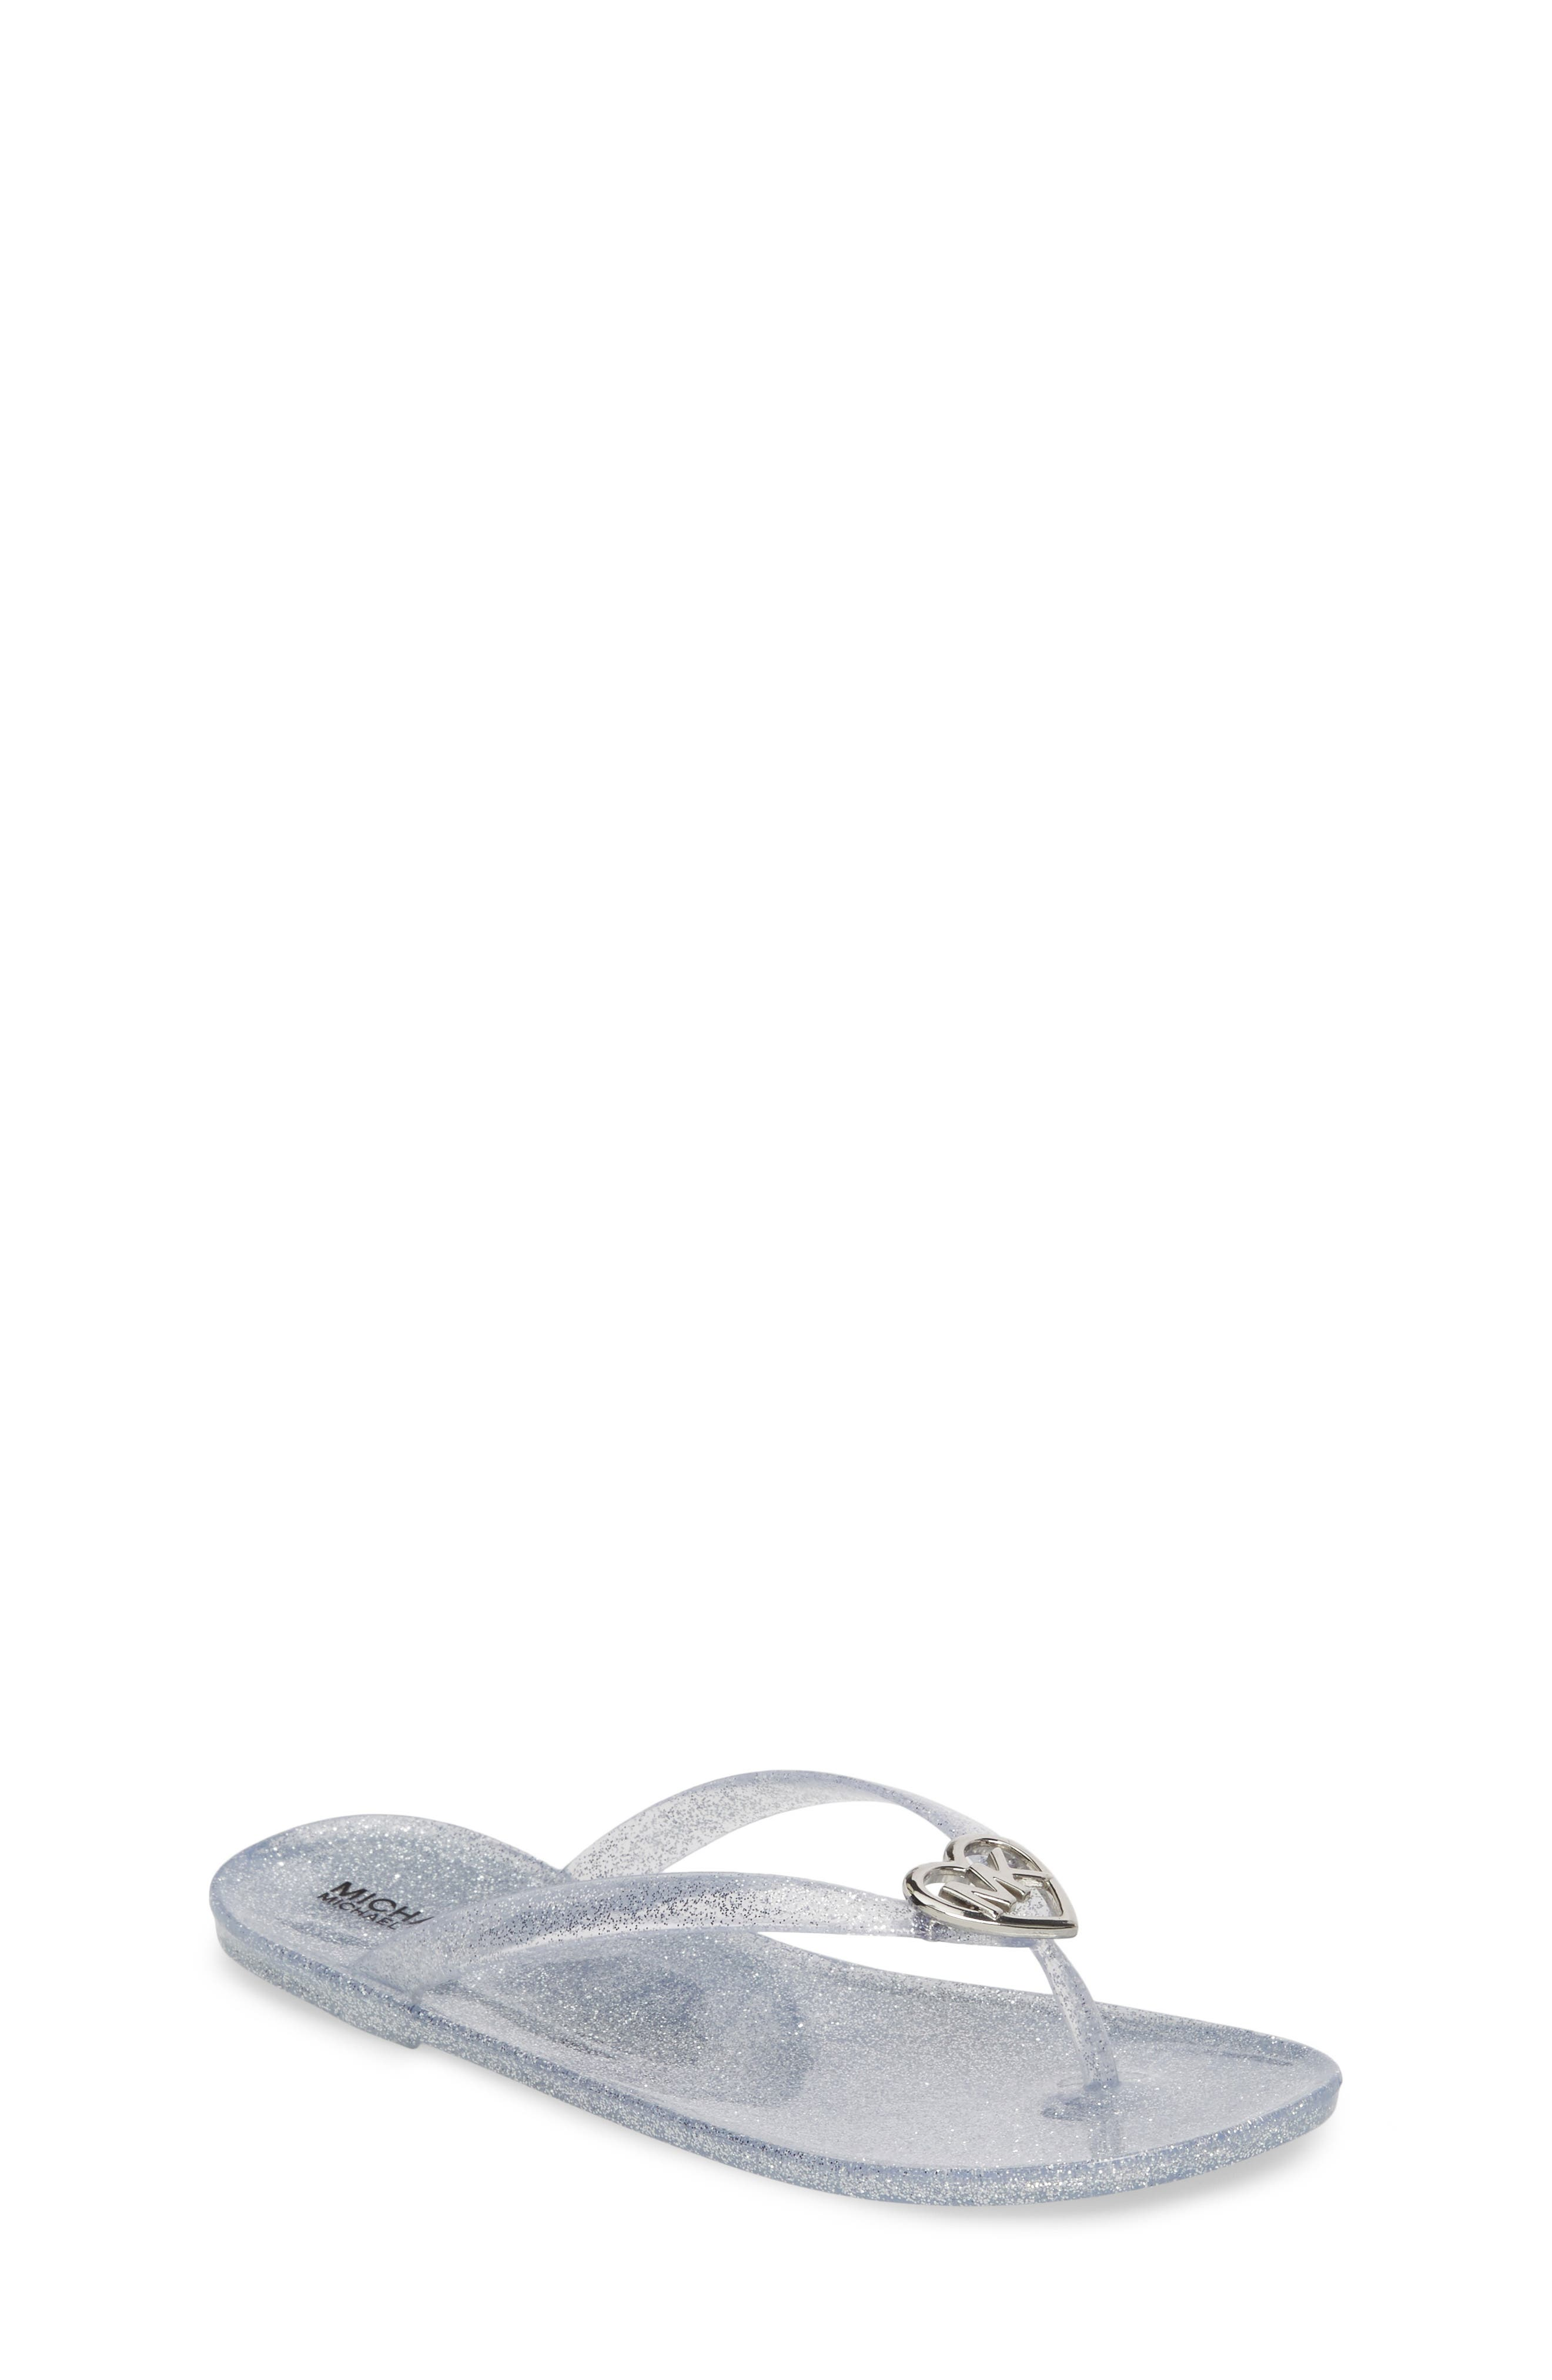 Trish Glare Glitter Flip Flop,                         Main,                         color, 040